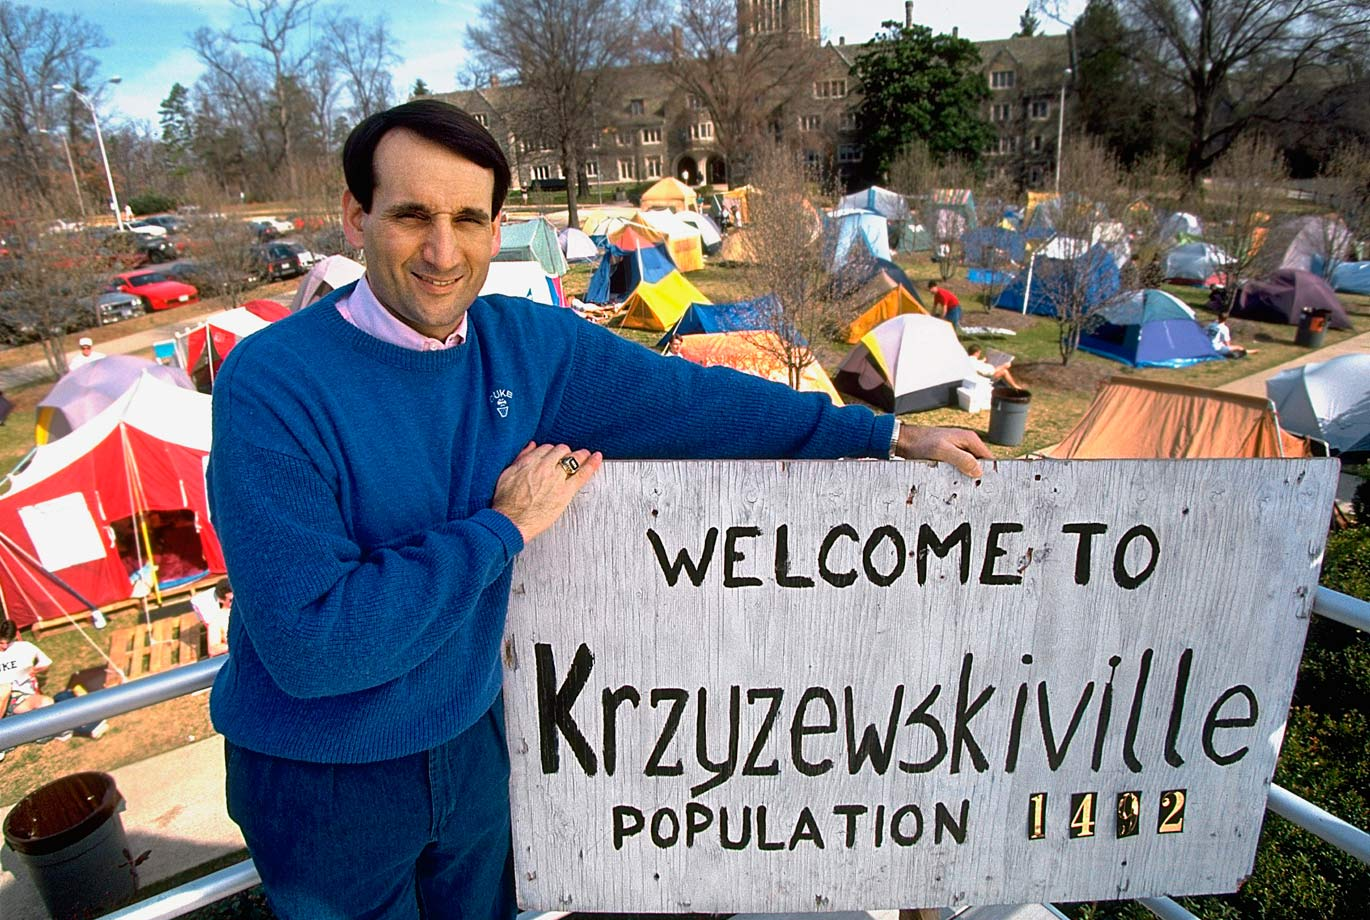 Mike Krzyzewski poses in front of tents in Durham, N.C. He has been the head coach at Duke since 1980.